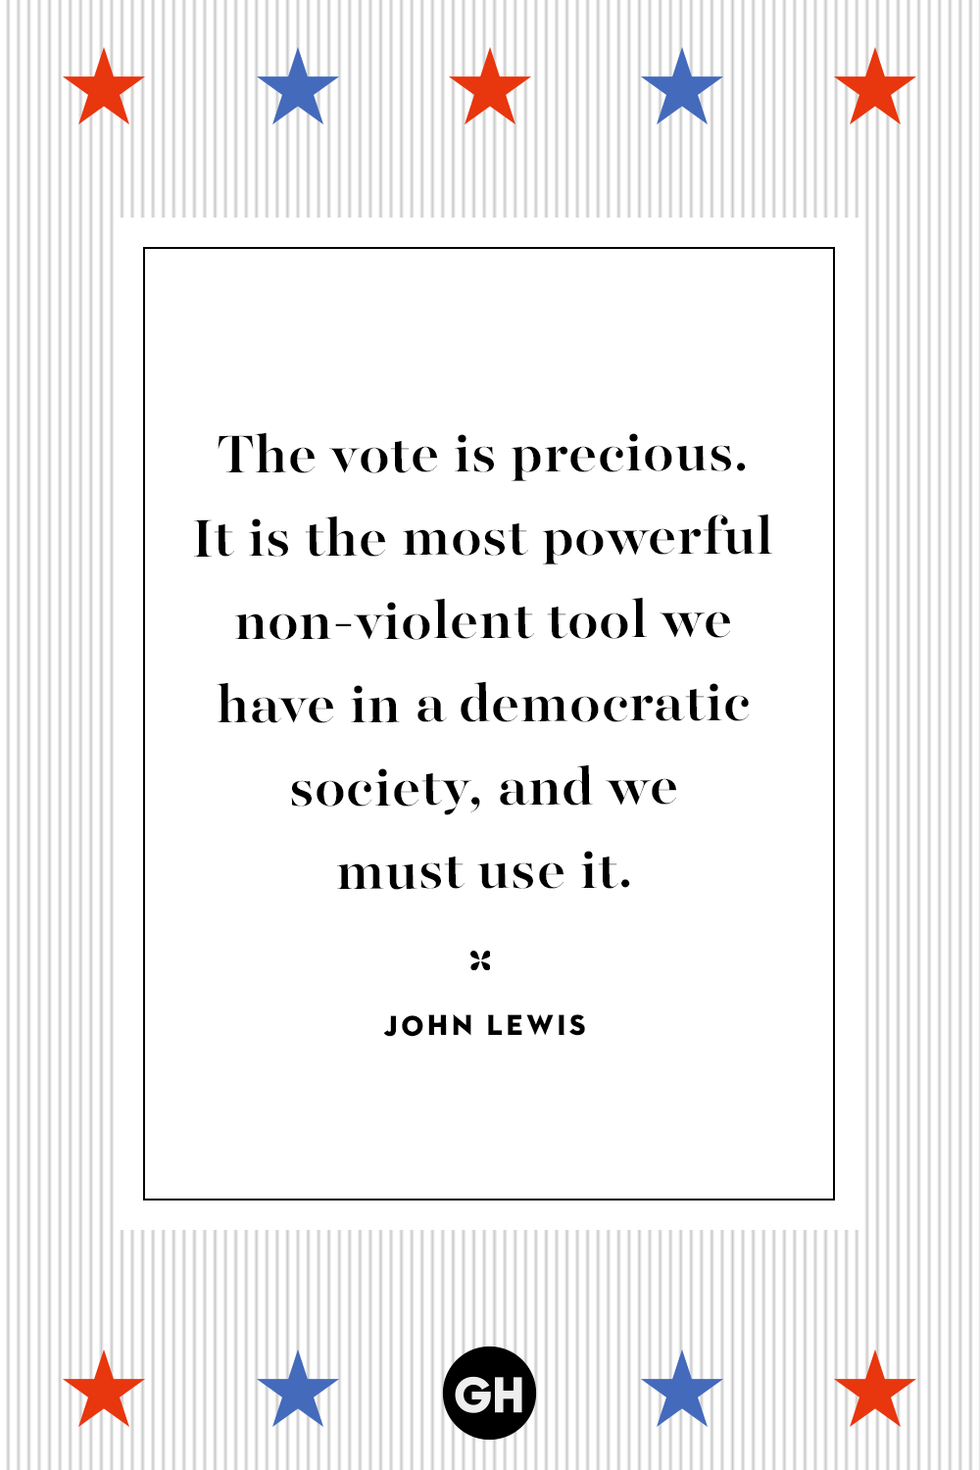 election-quotes-voting-quotes-19-john-lewis-1567019365